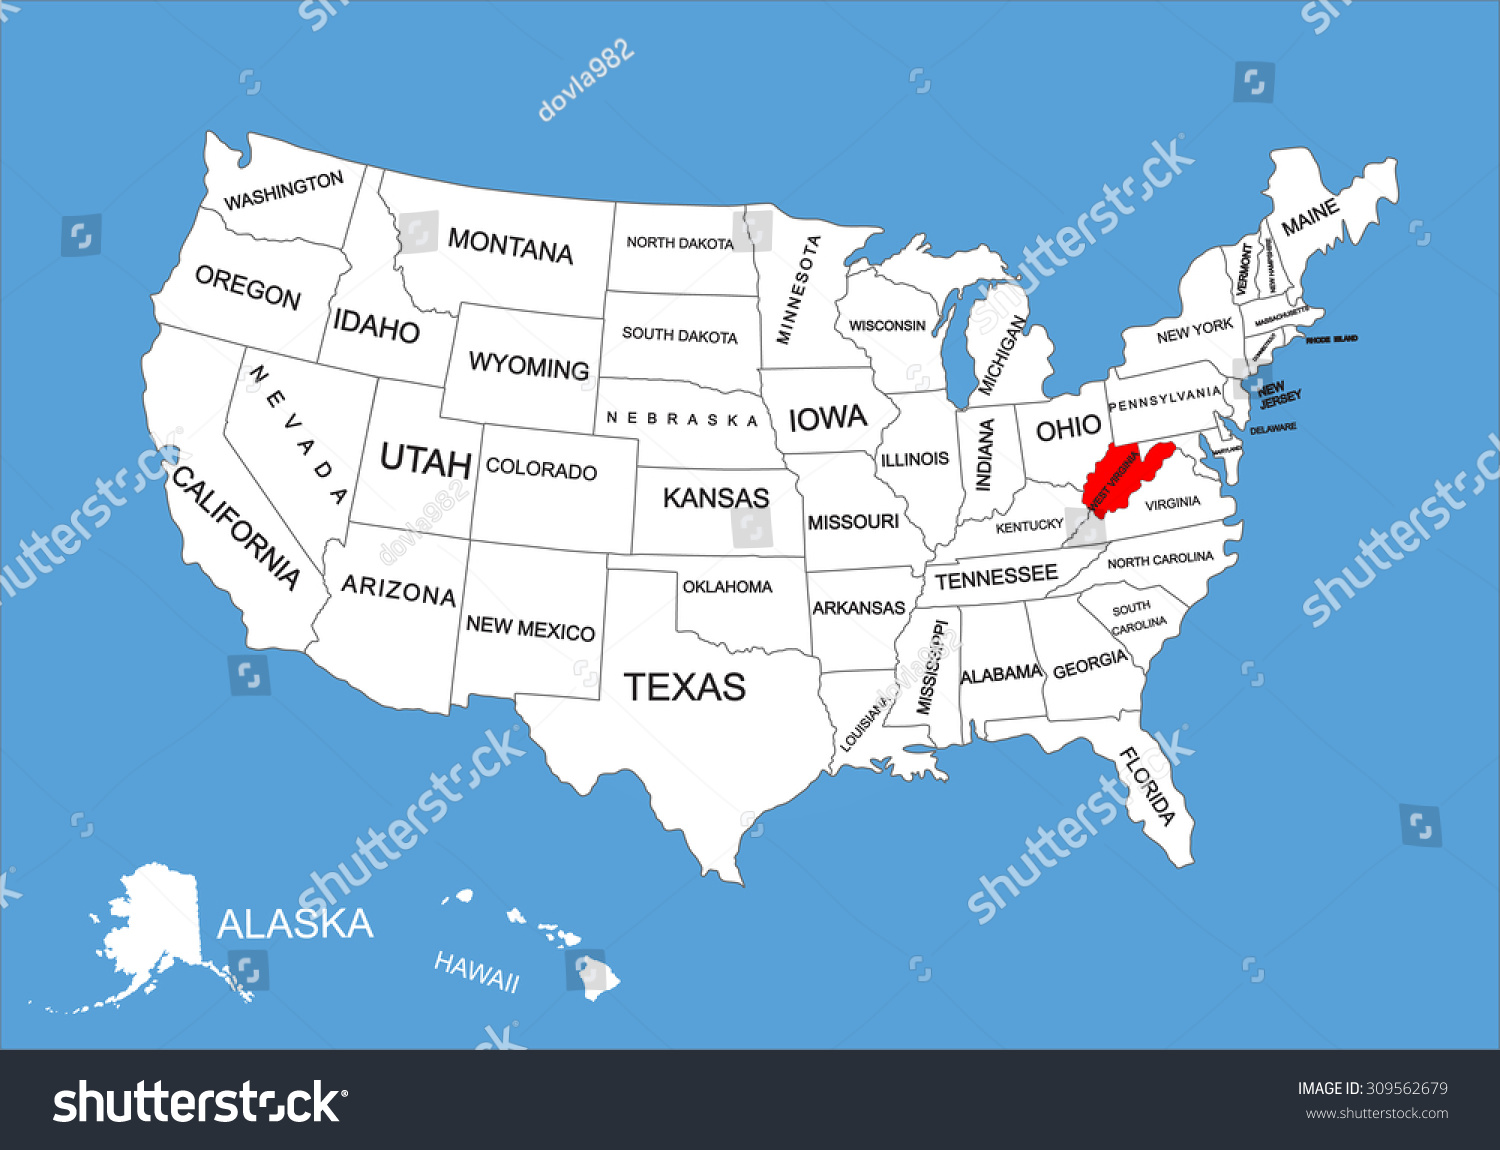 West Virginia State Usa Vector Map Stock Vector 309562679